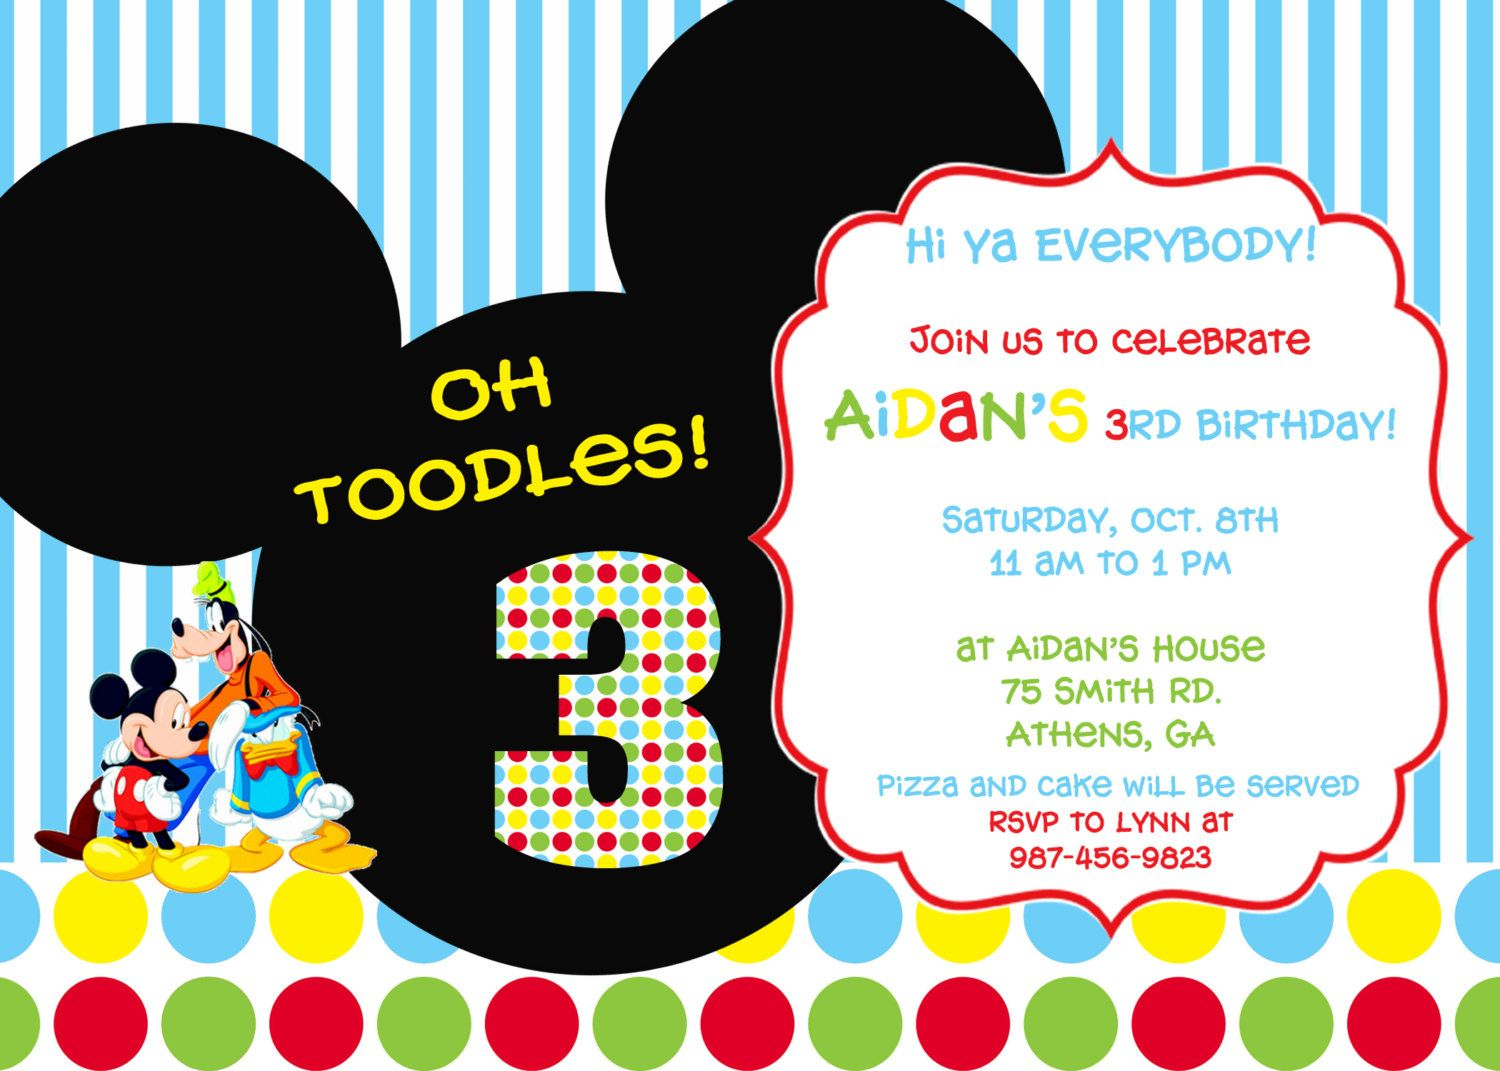 colorful mickey mouse clubhouse party invitation mickey mouse mickey mouse party invitations to impress your friend and people around you beautiful party invitation template that we provide it for